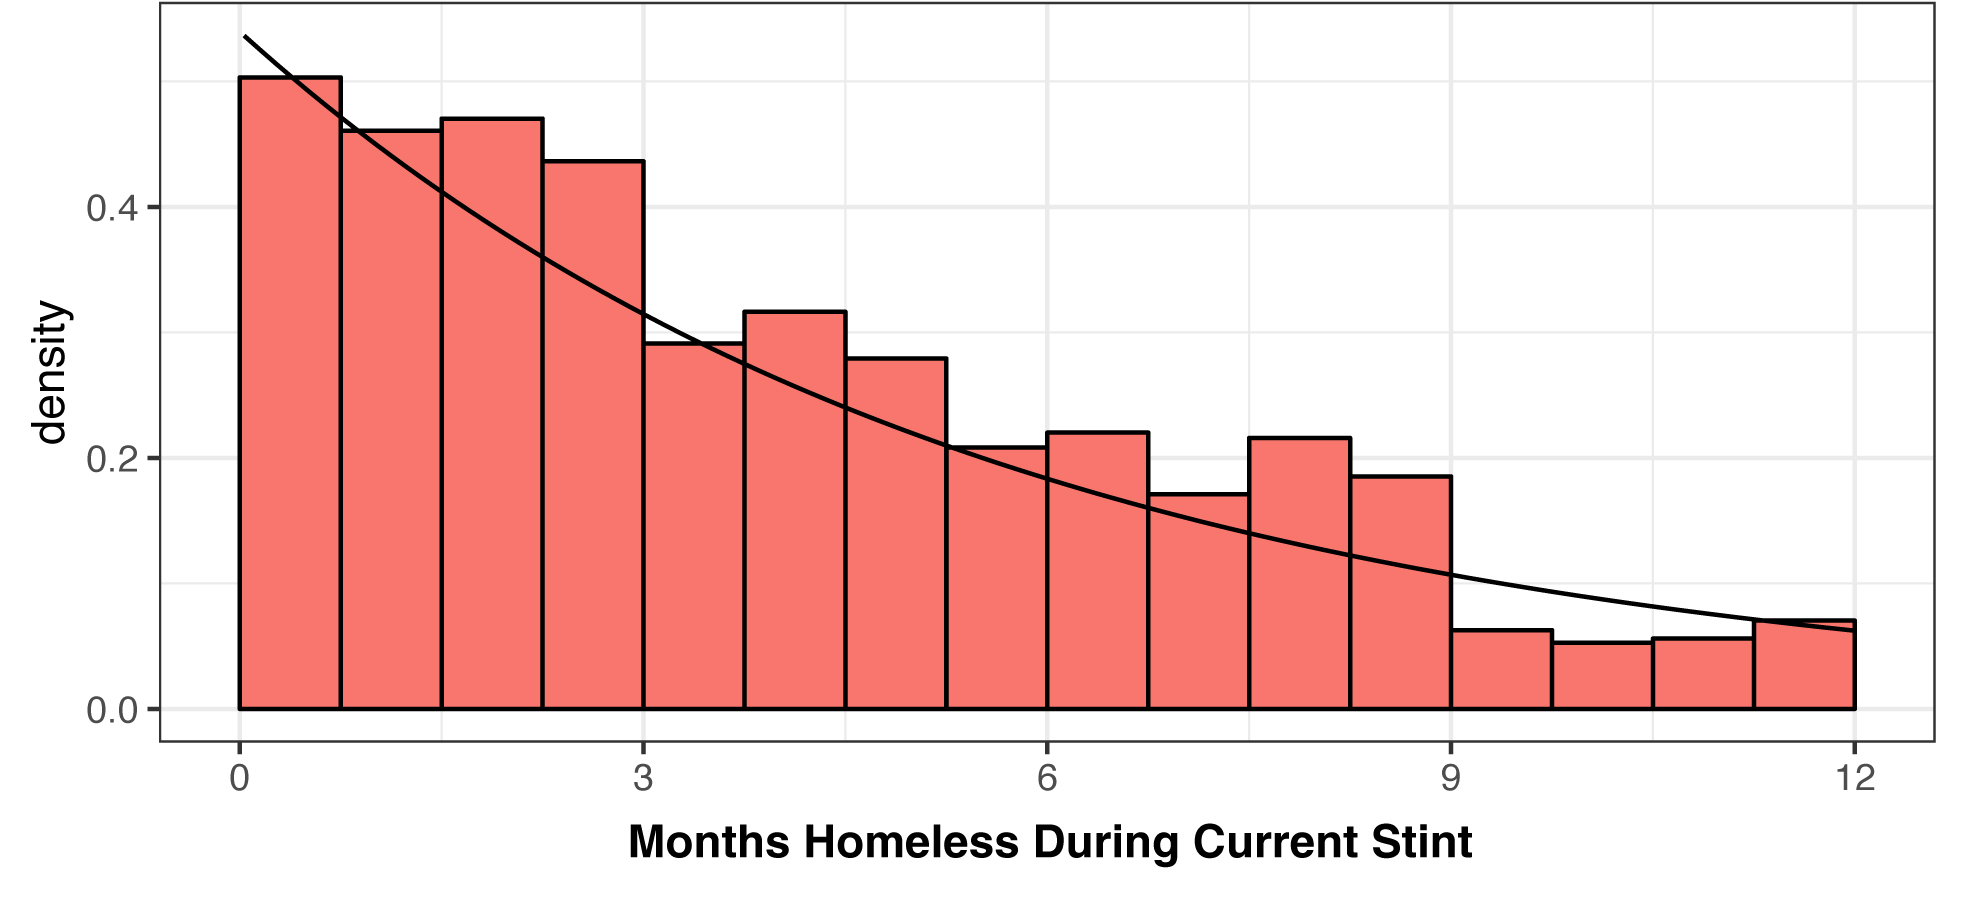 Economic Roundtable Estimating The Annual Size Of The Homeless Population In Los Angeles Using Point In Time Data